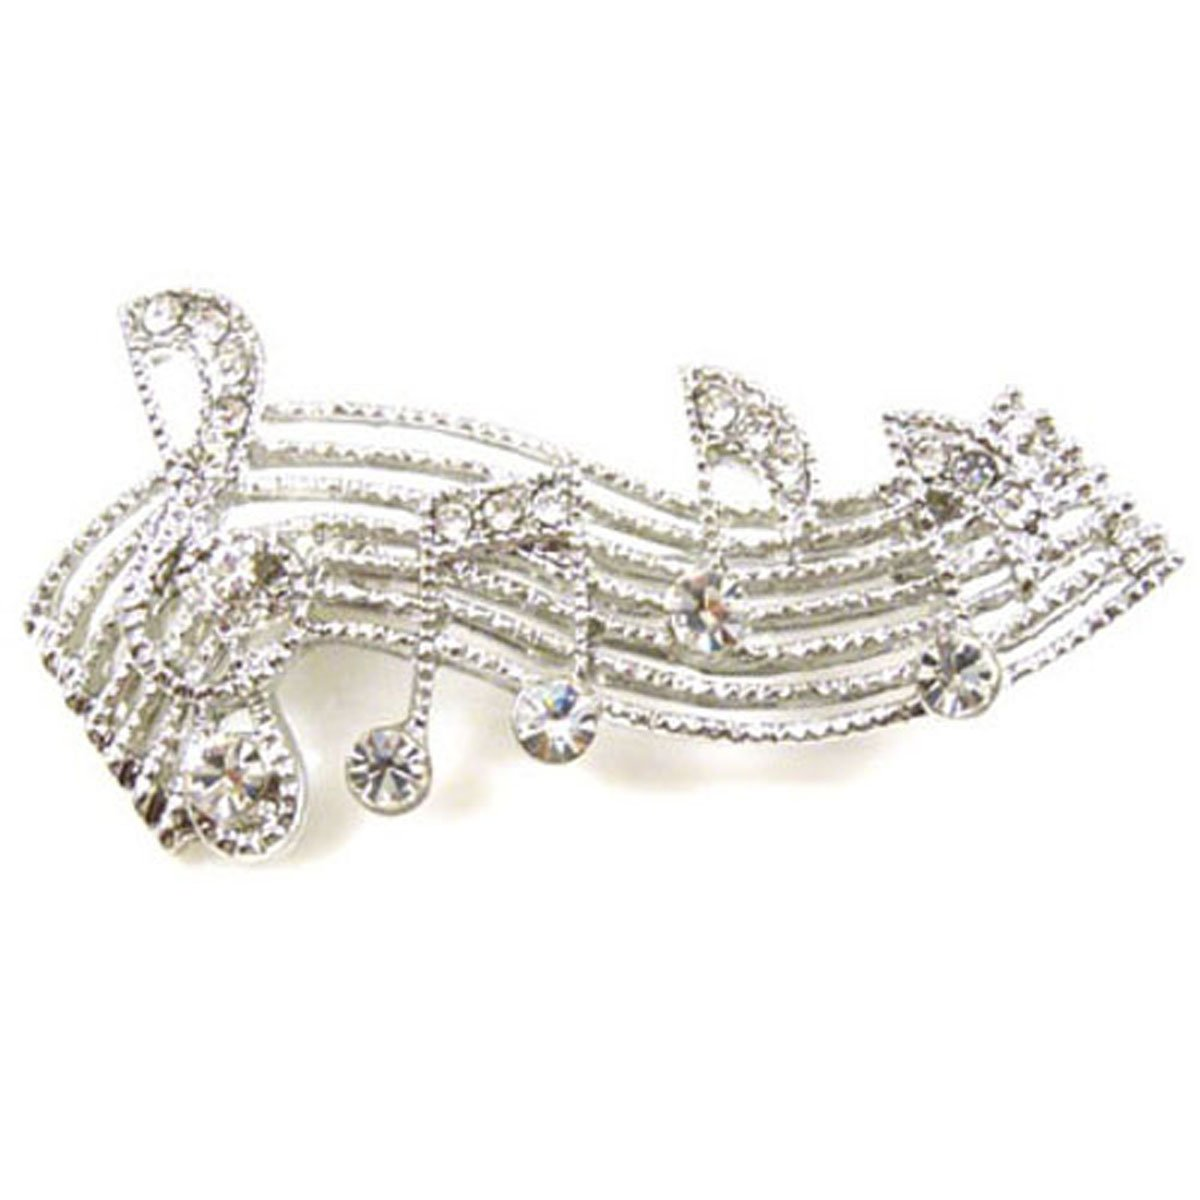 bd6caf22530 Brooches Store Silver   Swarovski Crystal Music Notes Brooch  Brooches  Store  Amazon.co.uk  Jewellery